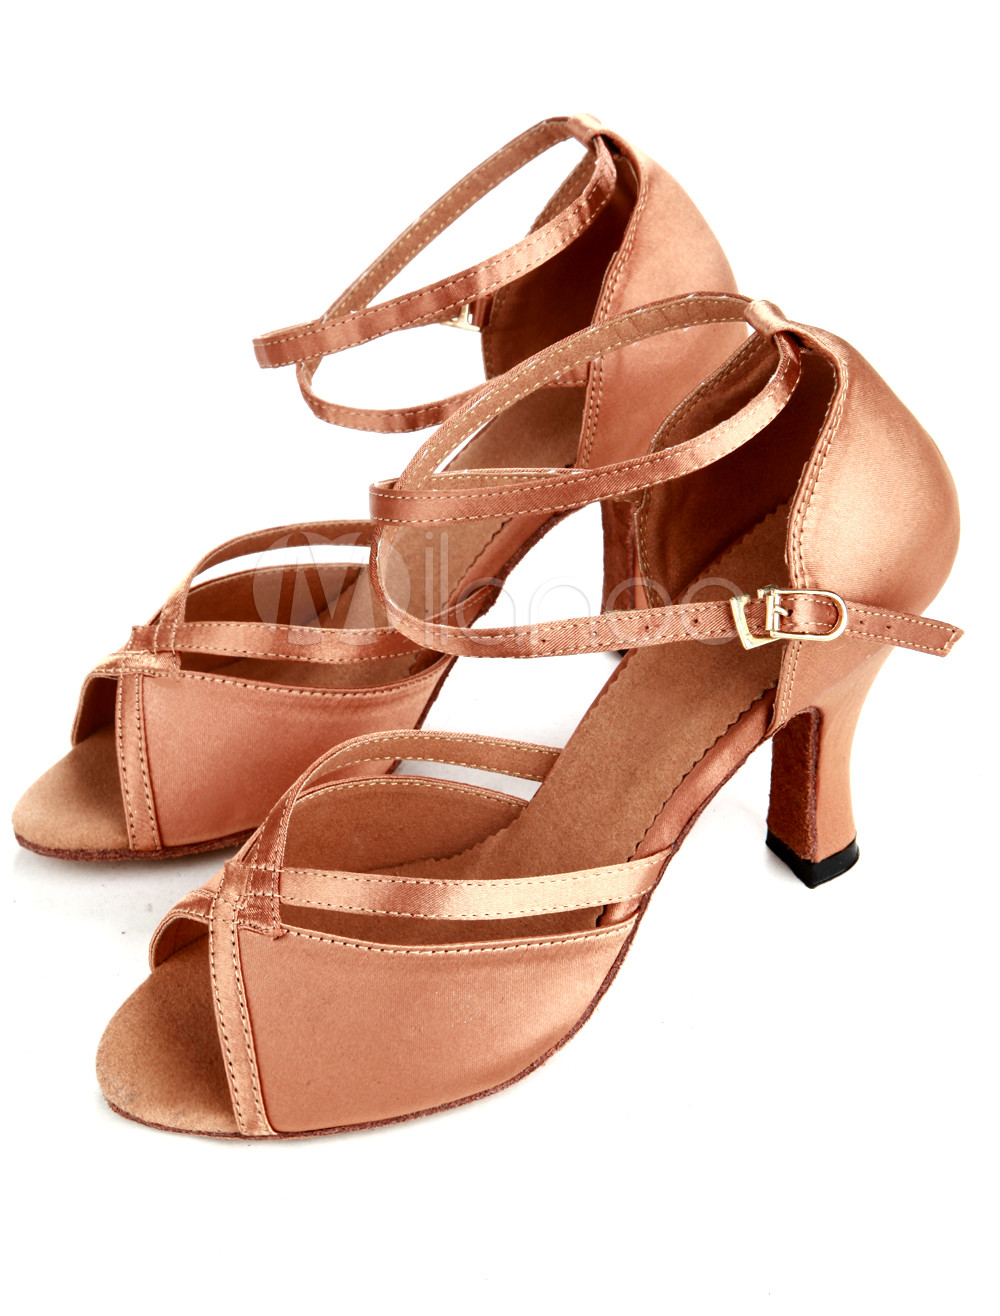 Tradition Bronze Satin Women's Latin Dance Shoes